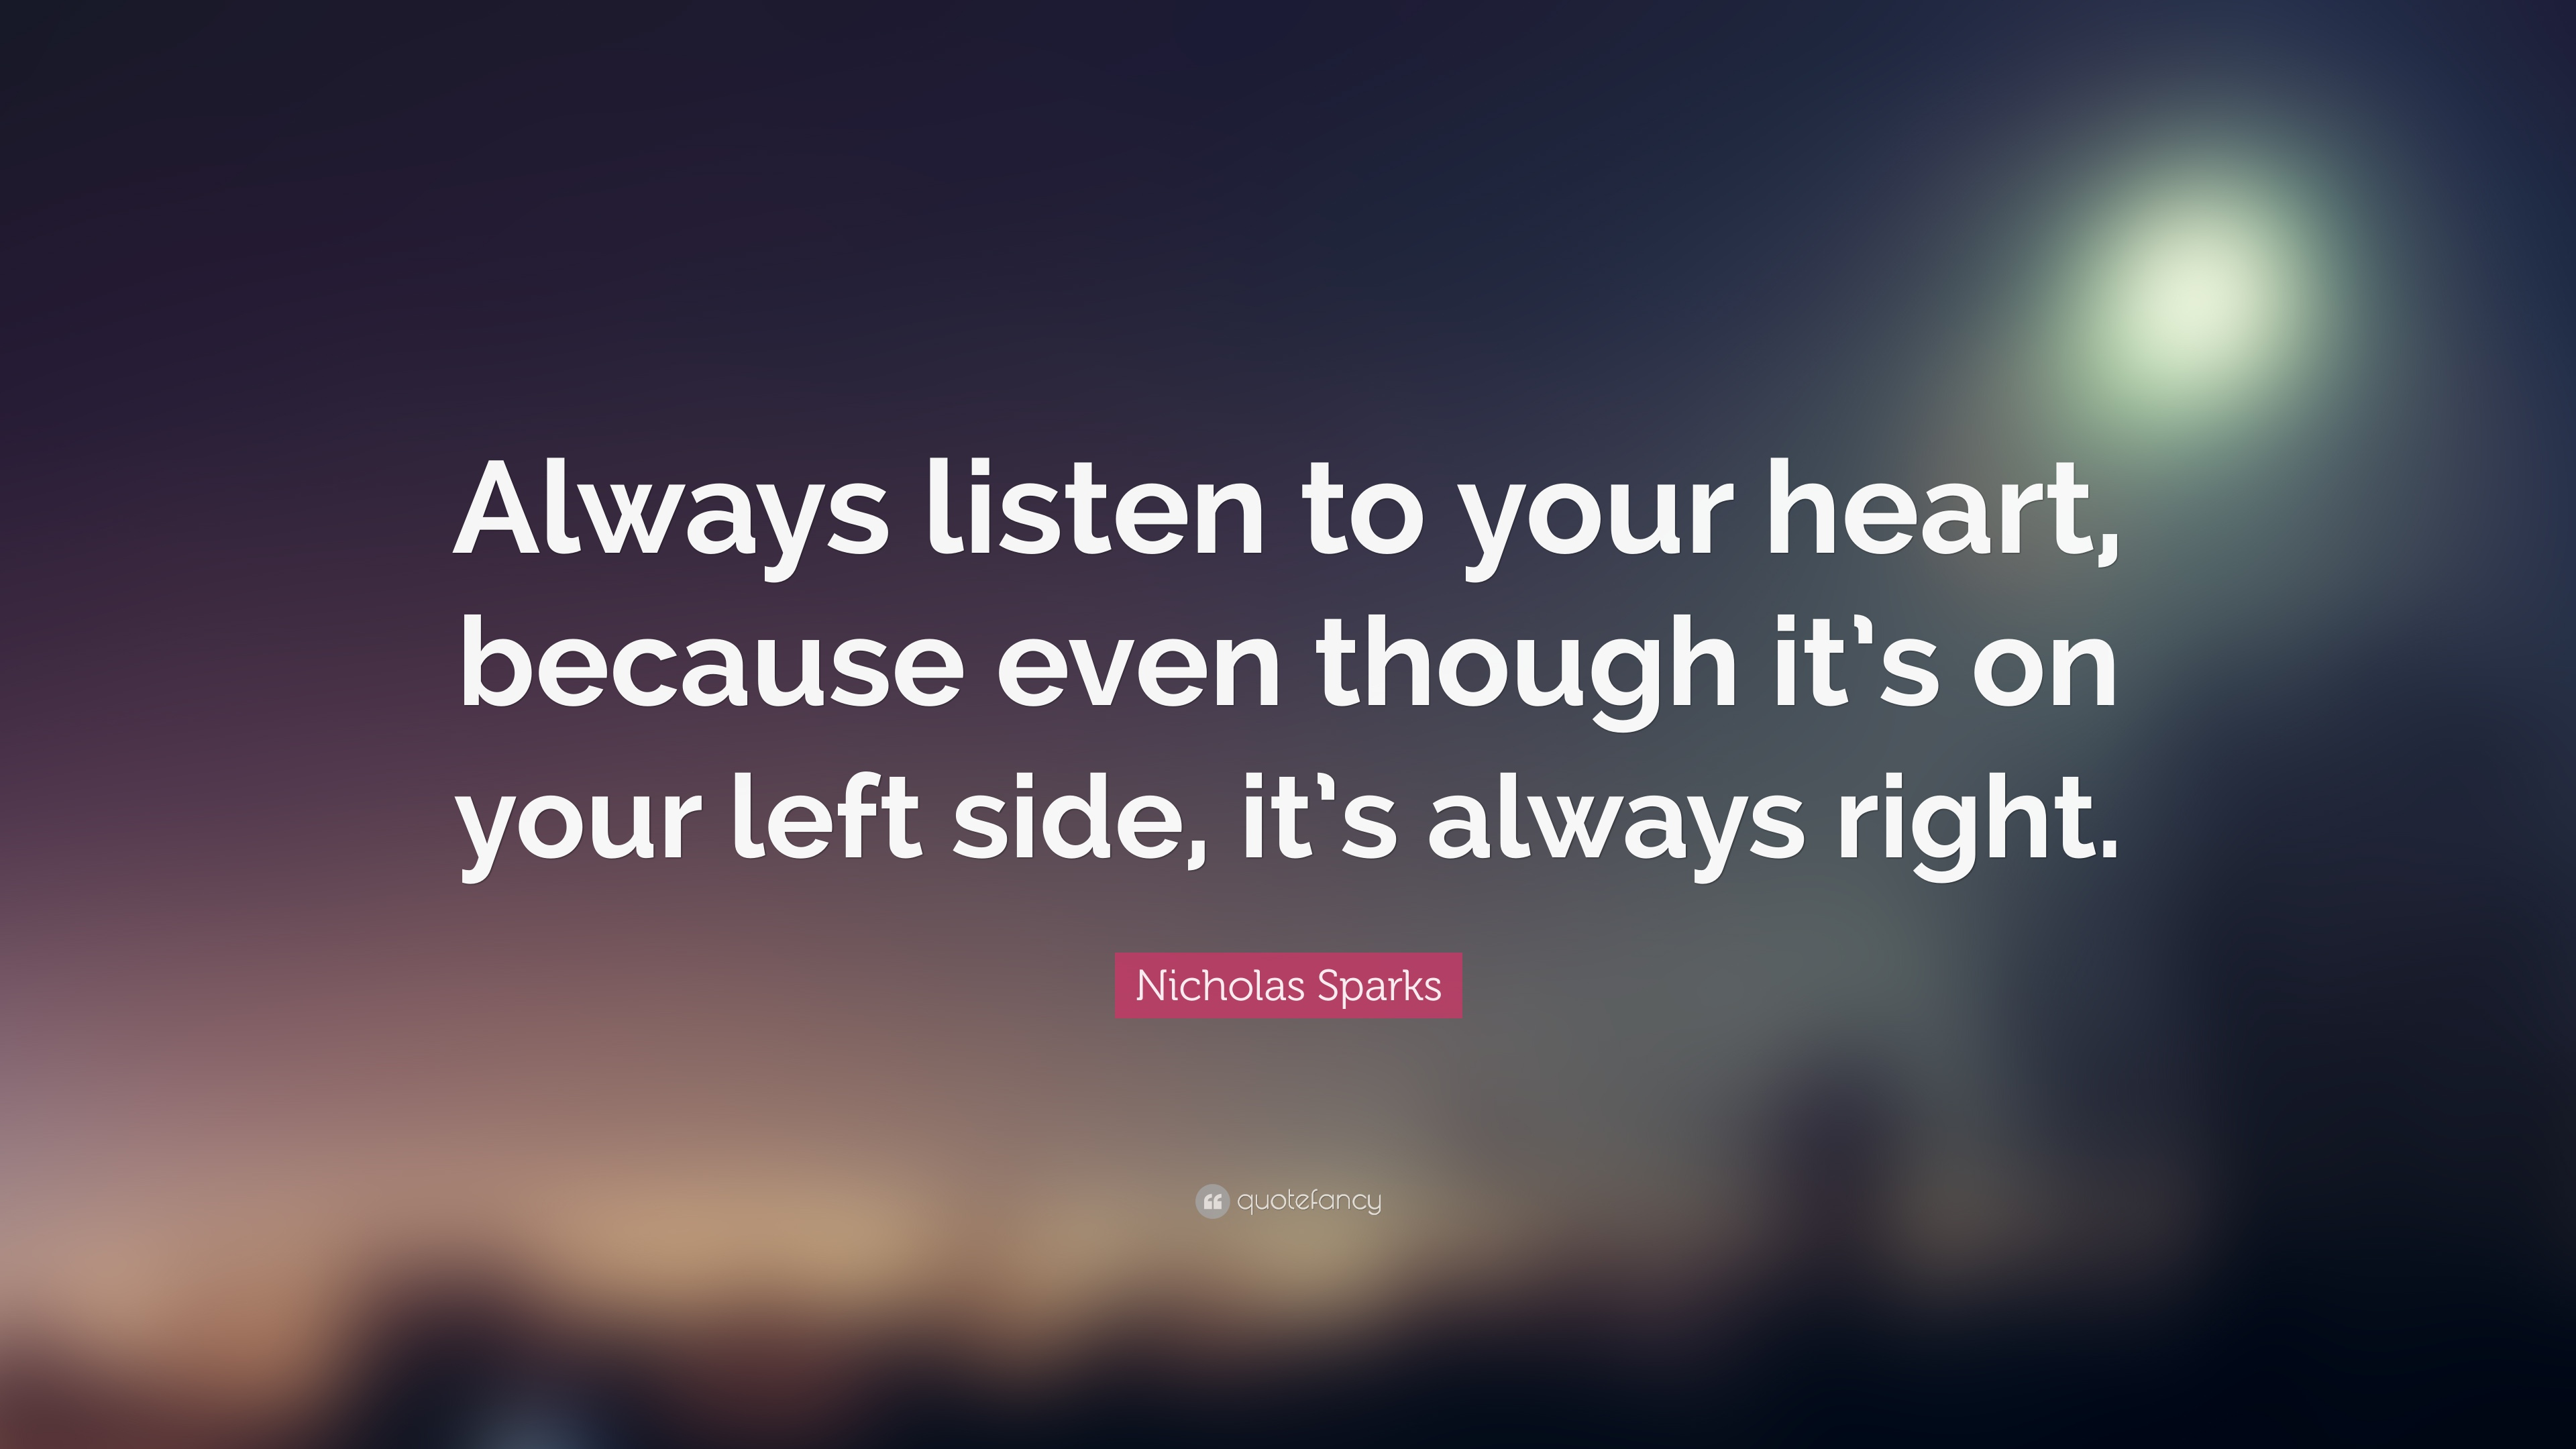 Attirant Nicholas Sparks Quote: U201cAlways Listen To Your Heart, Because Even Though  Itu0027s On